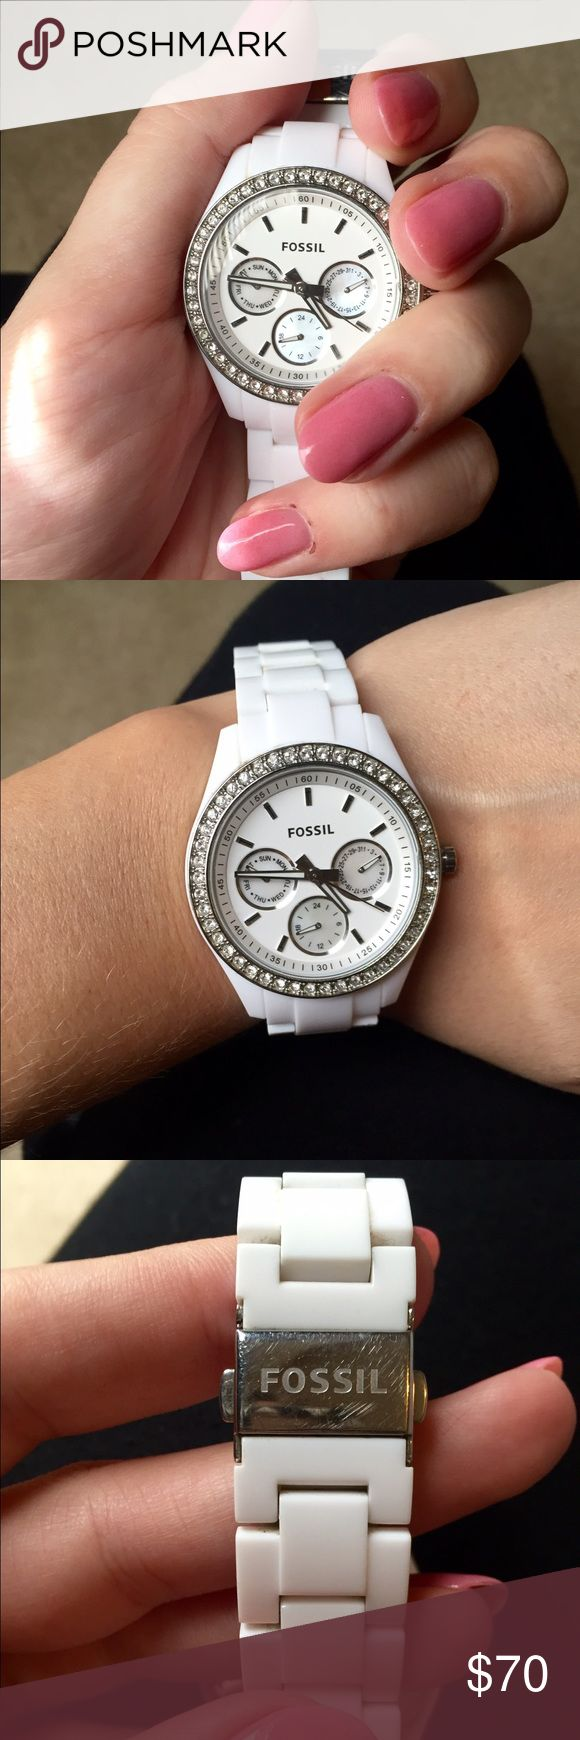 Fossil watch Beautiful white watch with silver detailing. In like new condition, only worn a handful of times. Needs new watch battery, minor scratches on clasp. I have a small wrist and it fits lose, links are remove able for adjusting. Fossil Accessories Watches